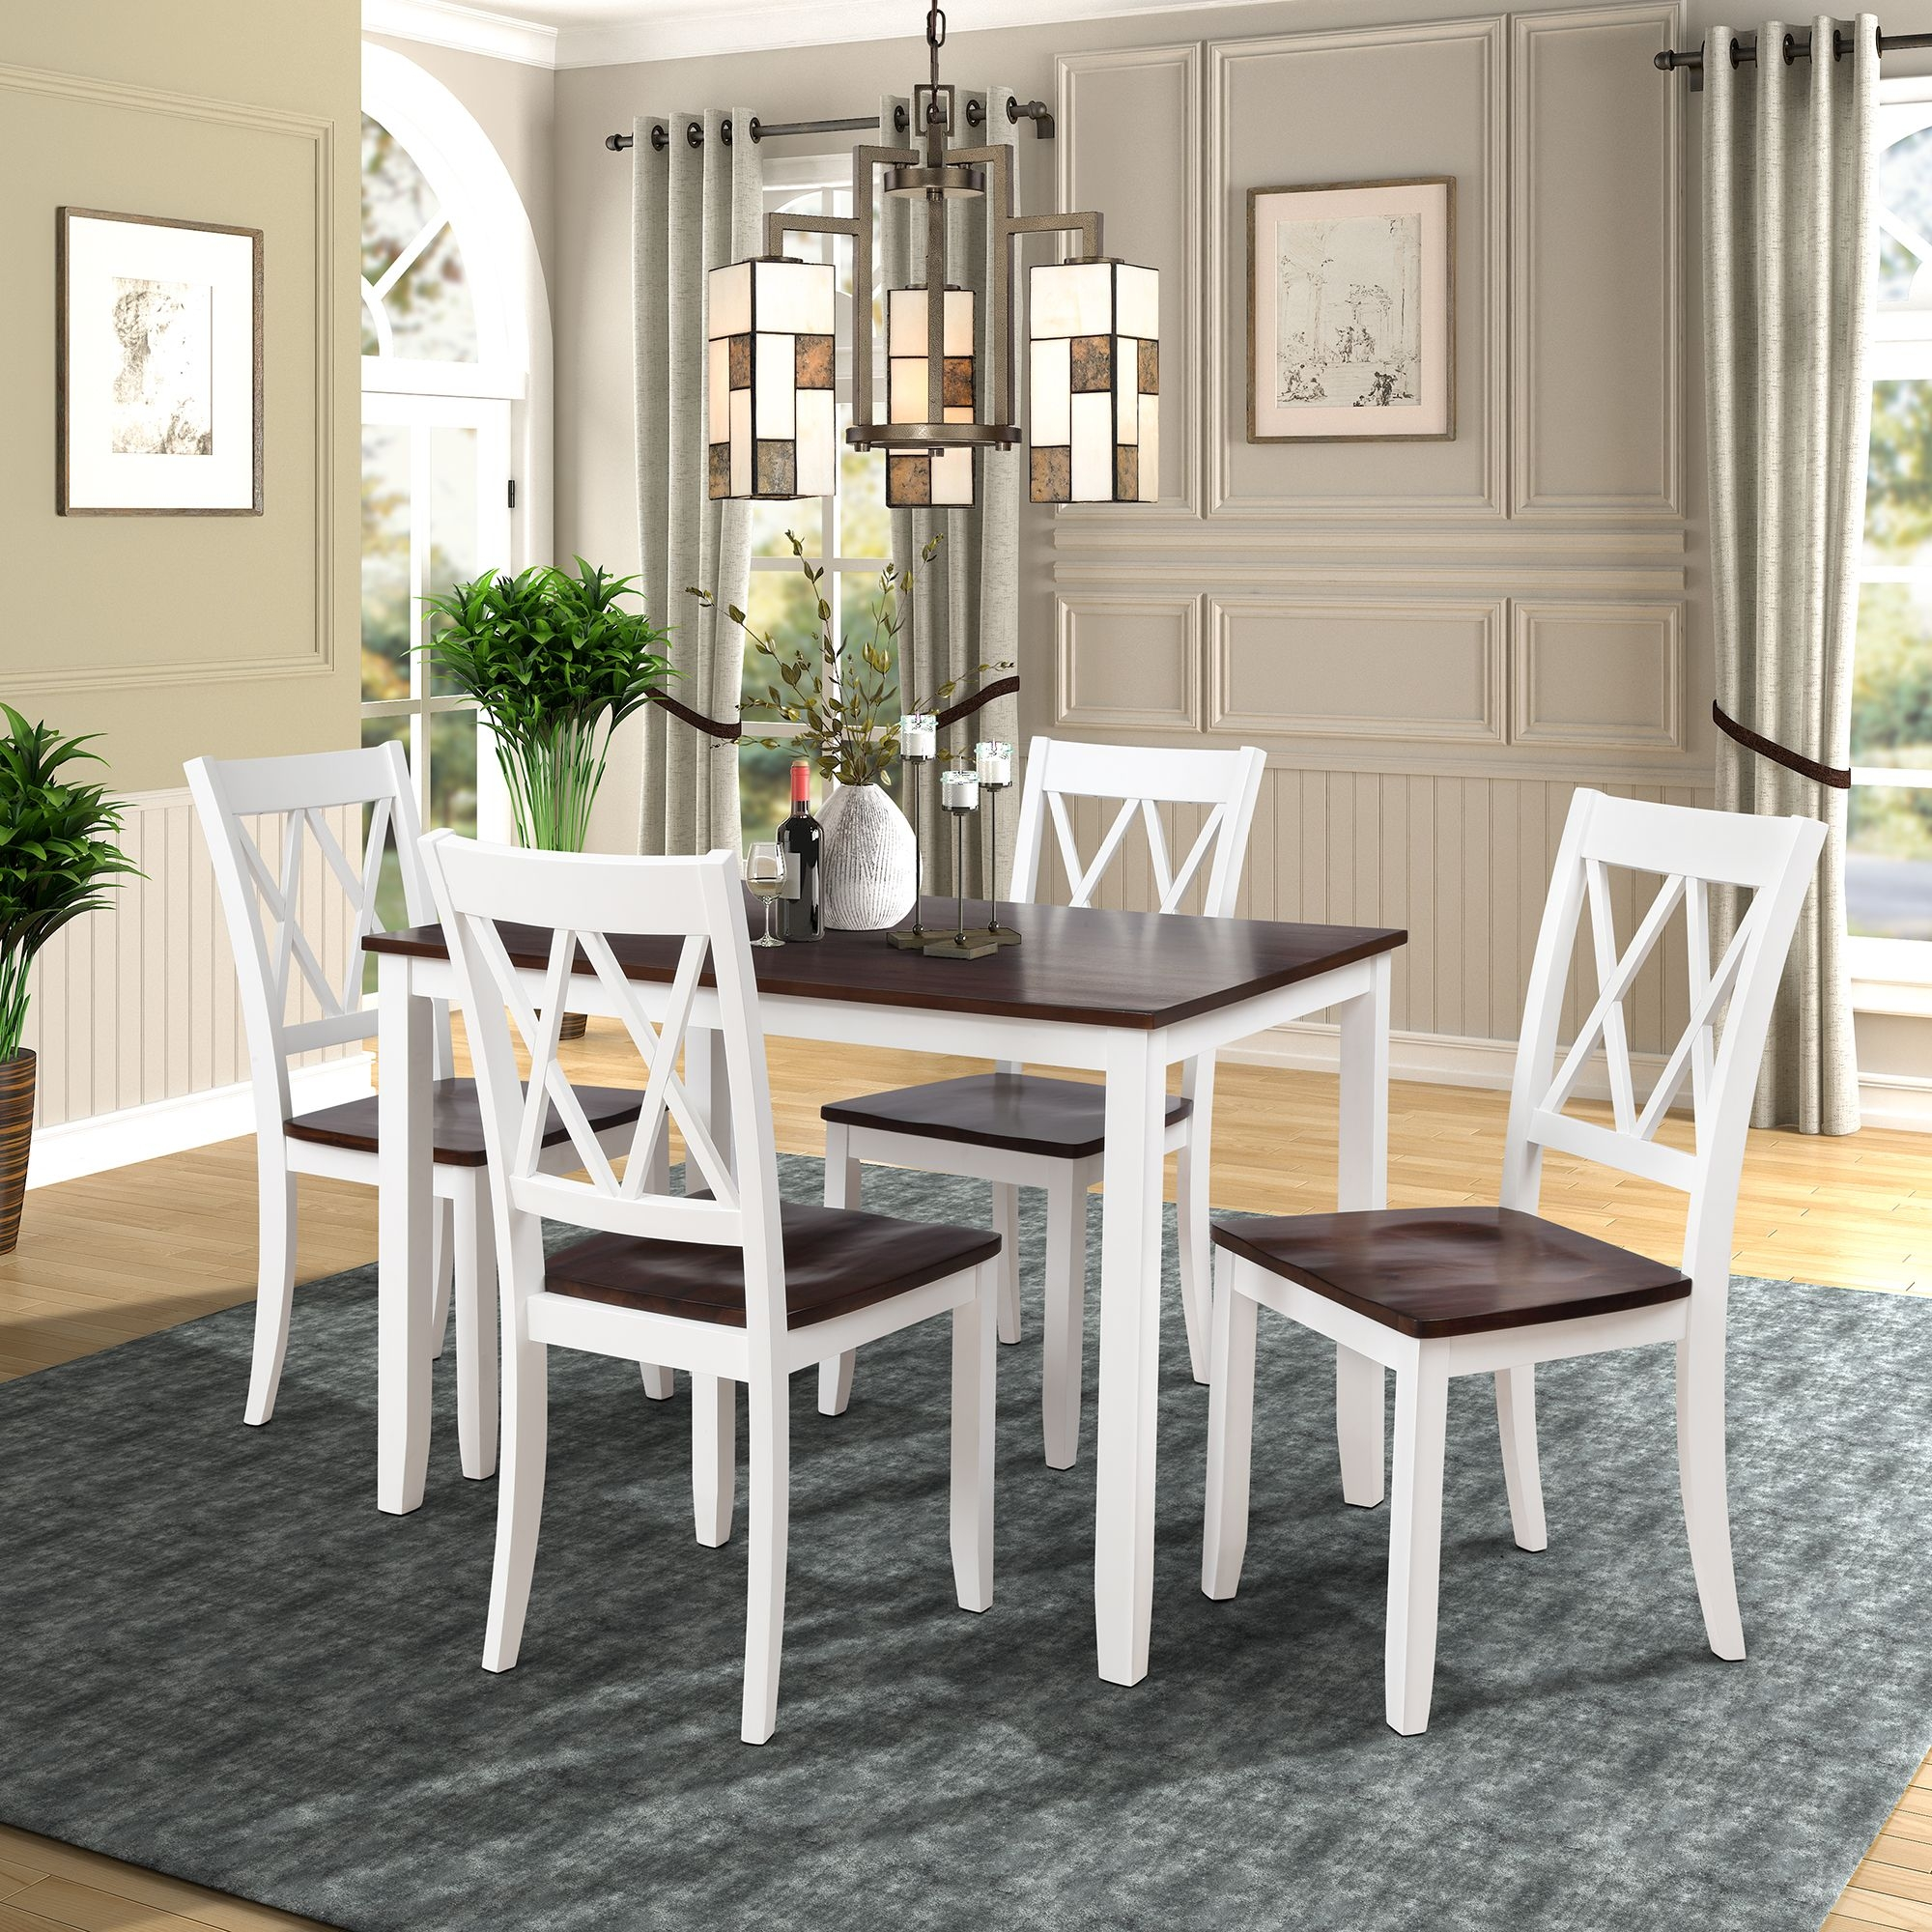 Clearance5 Piece Dining Table Set Modern Kitchen Table Sets With Dining Chairs For 4 White